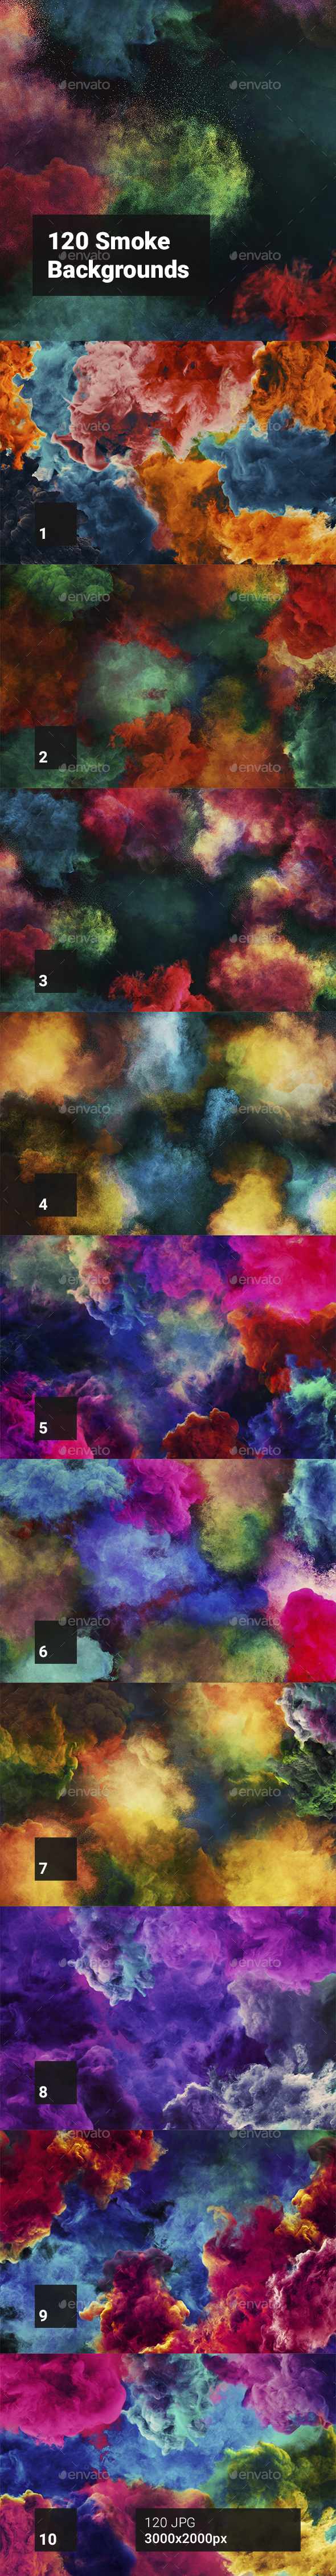 120 Smoke Backgrounds - Abstract Backgrounds